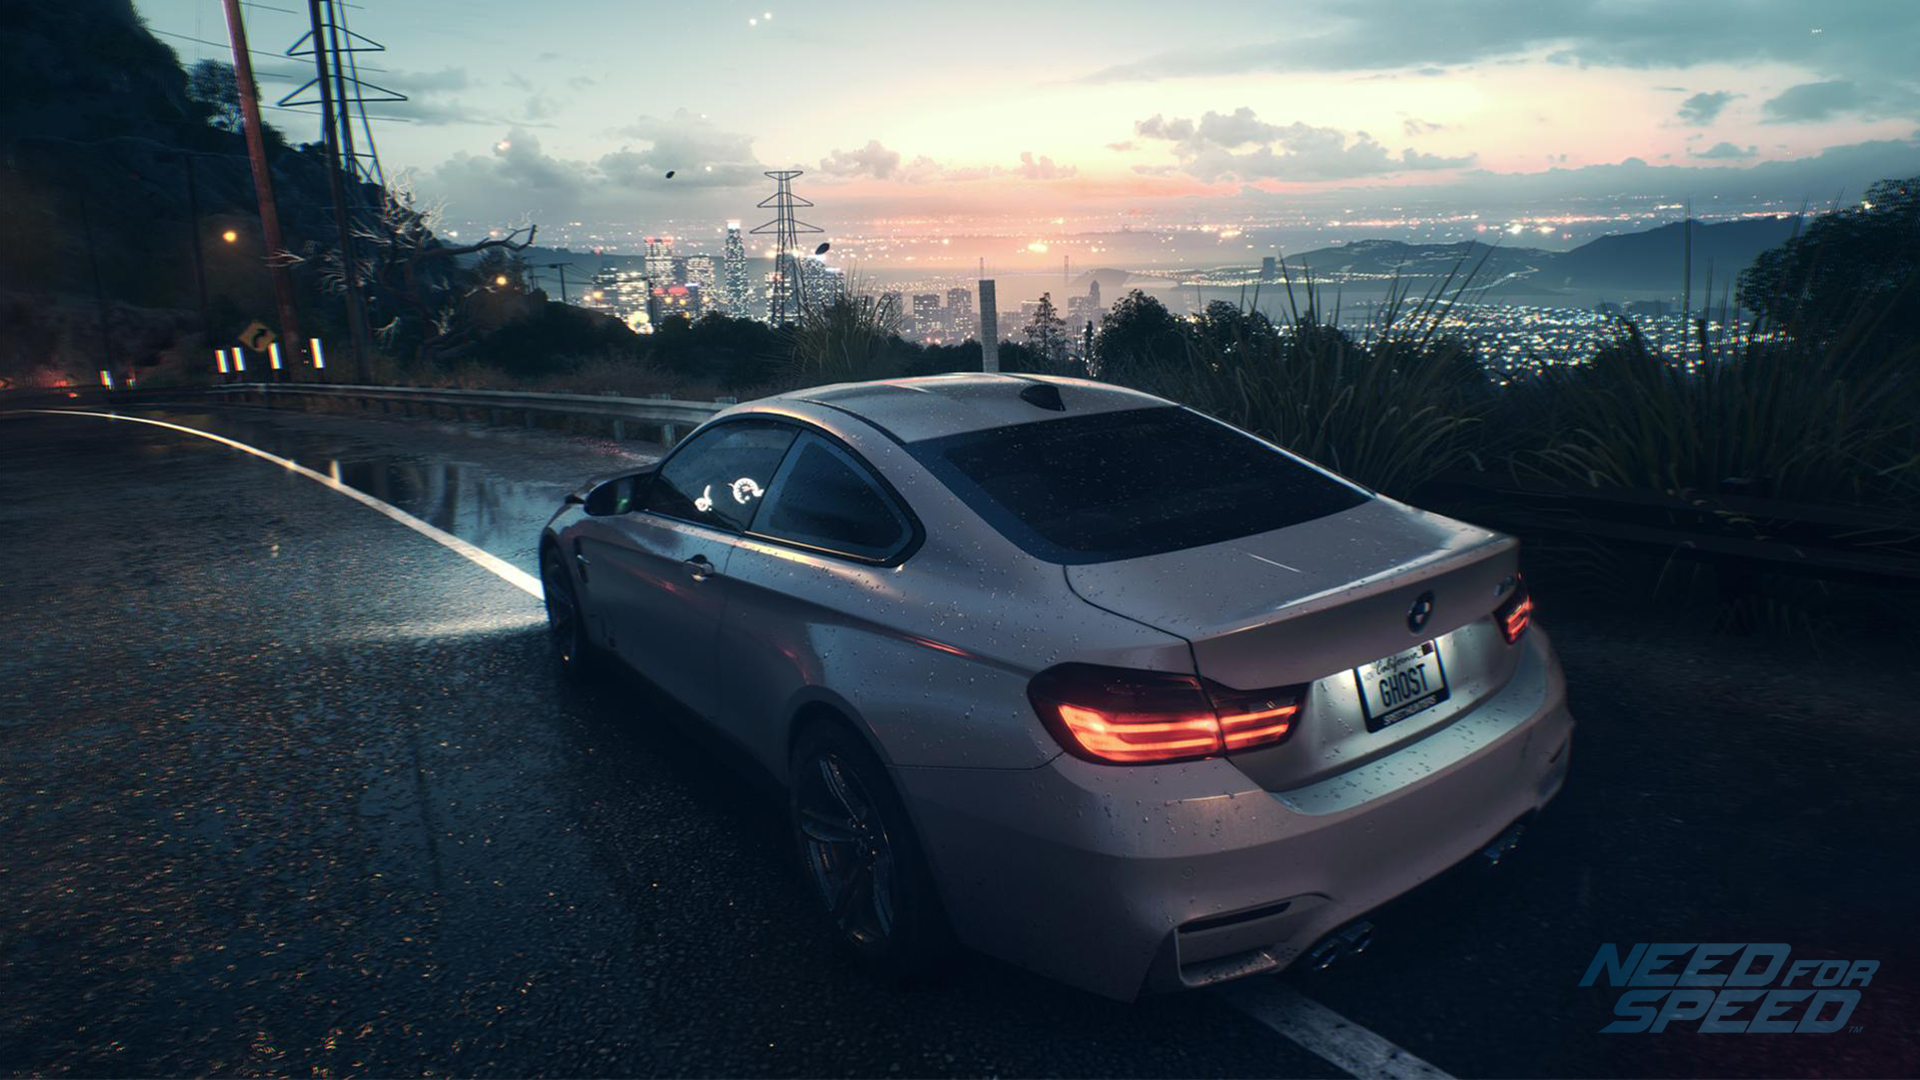 Need For Speed revealed system requirements and support